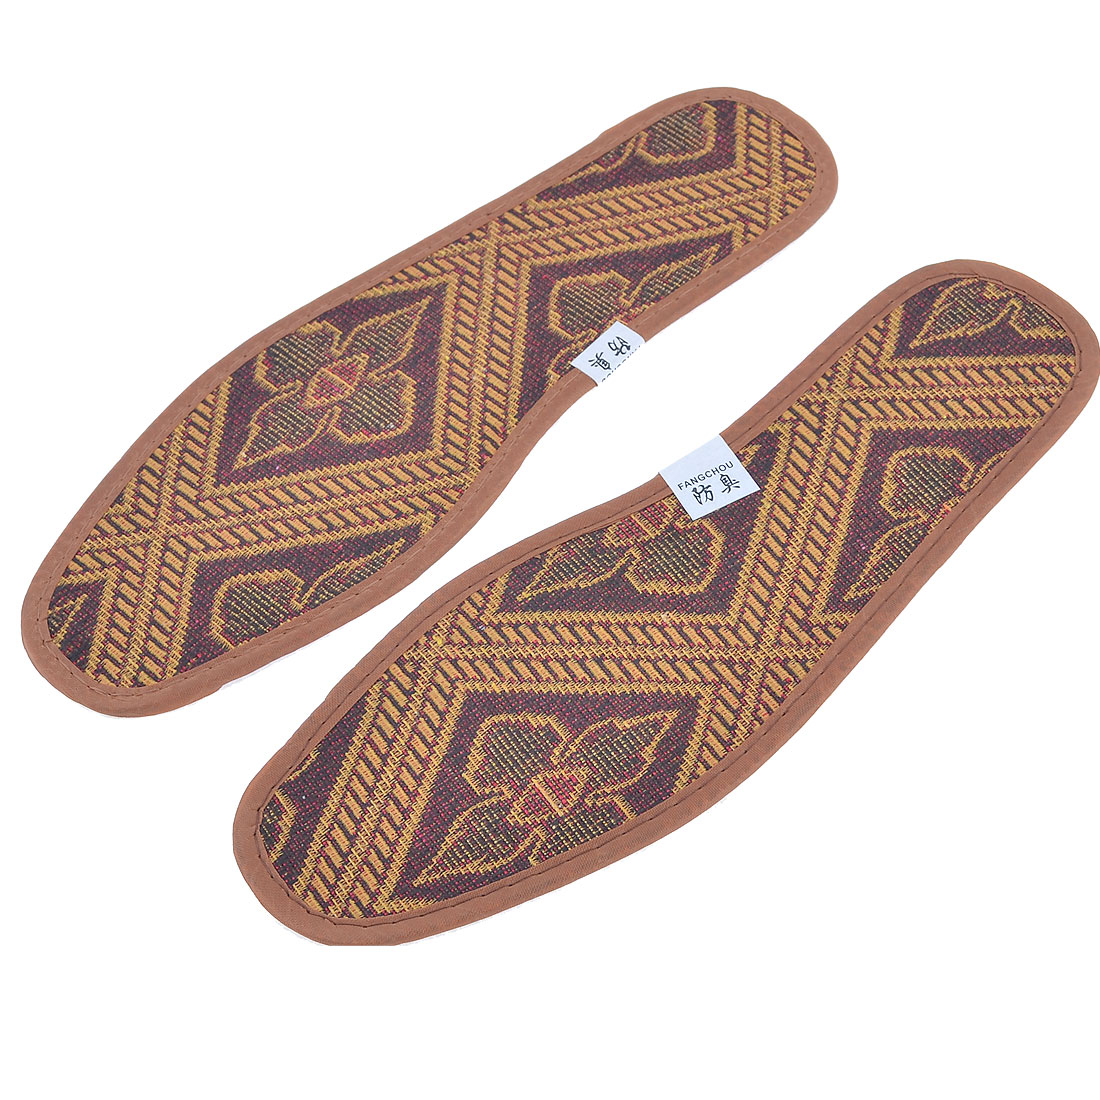 Pair Flower Print Textured Nonslip Shoe Pads Insoles Brown UK Size 7.5 for Men